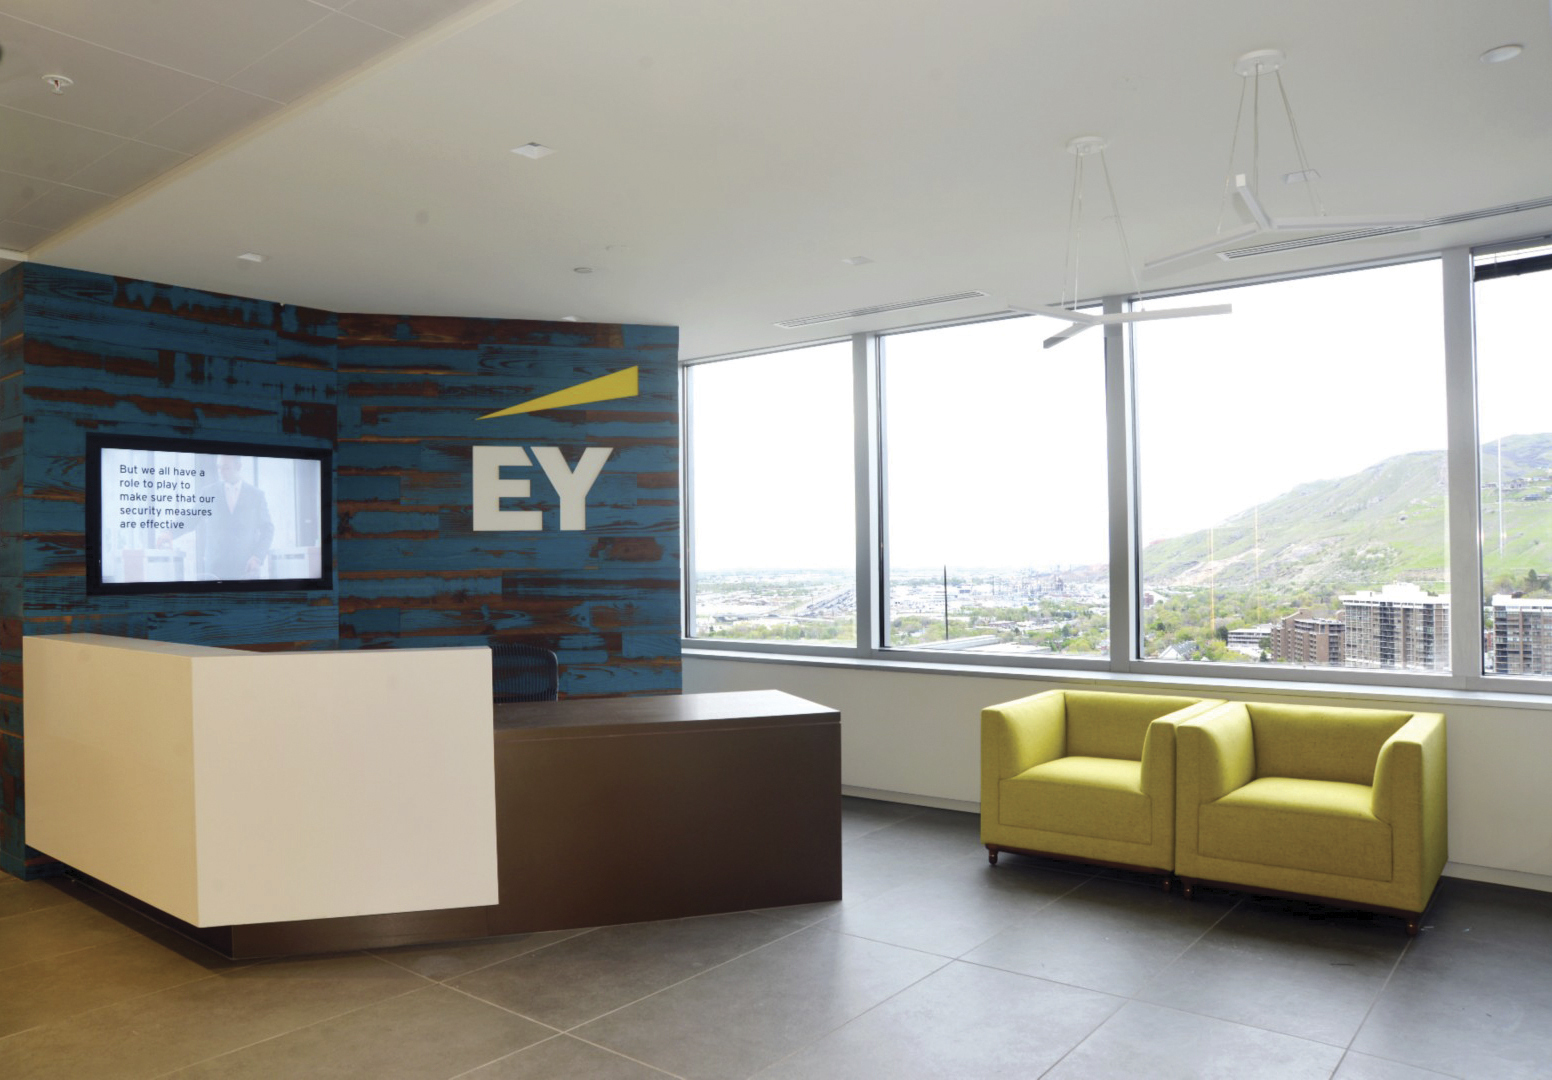 EY's new office located in Gateway Tower West building at 15 West Temple.